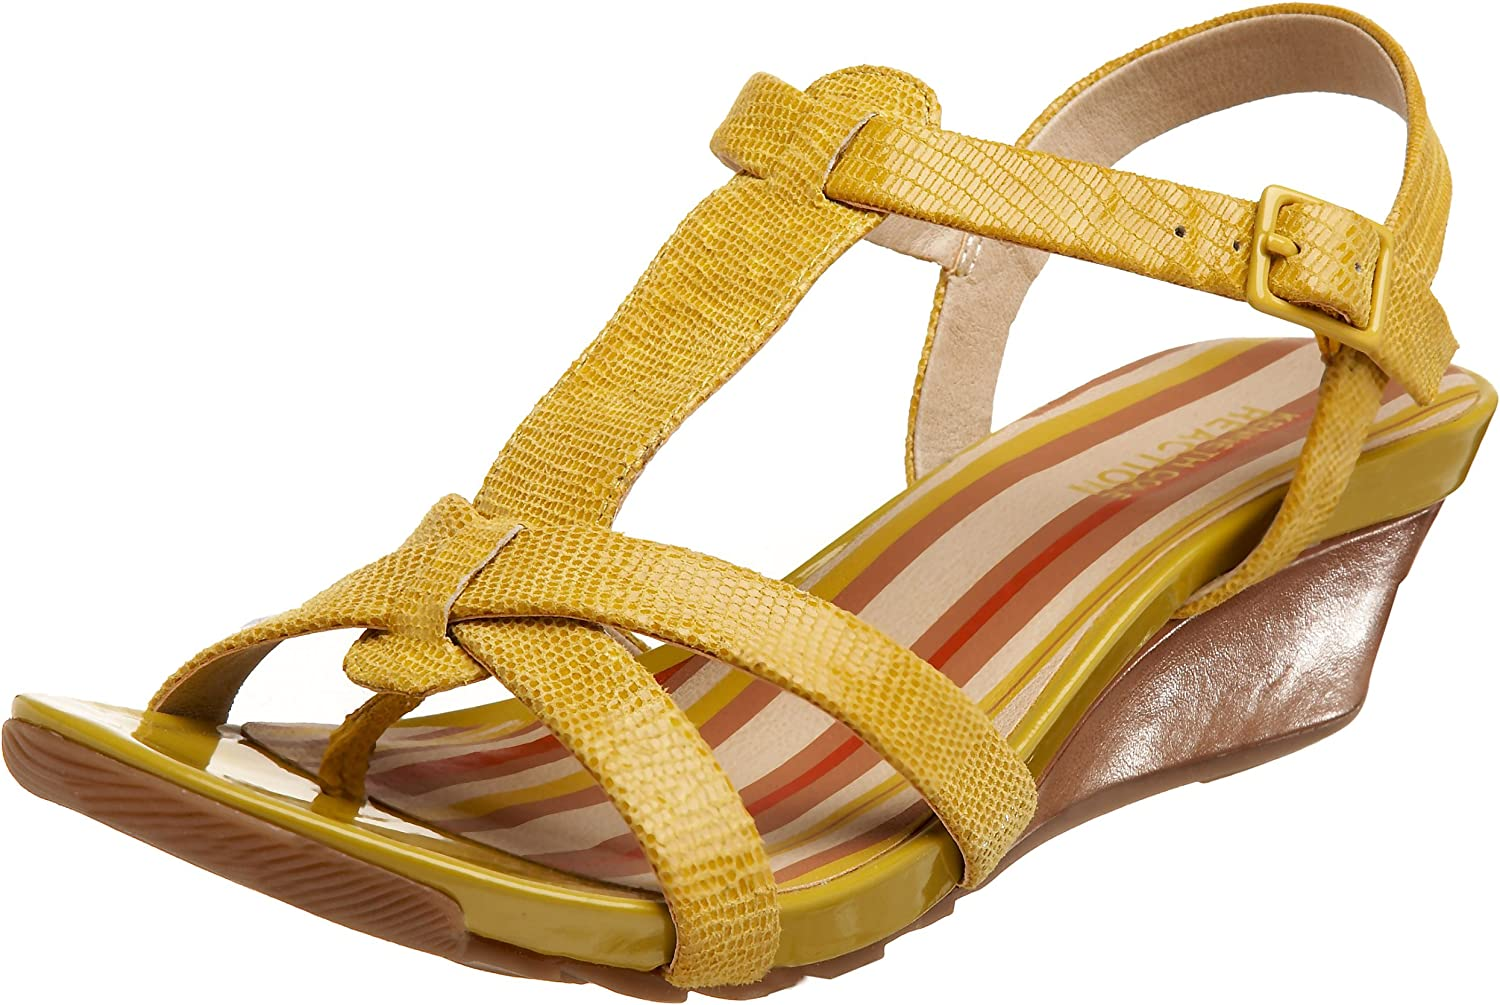 Online limited product Kenneth Cole REACTION Women's Sunny Dew Wedge T-Strap San Diego Mall